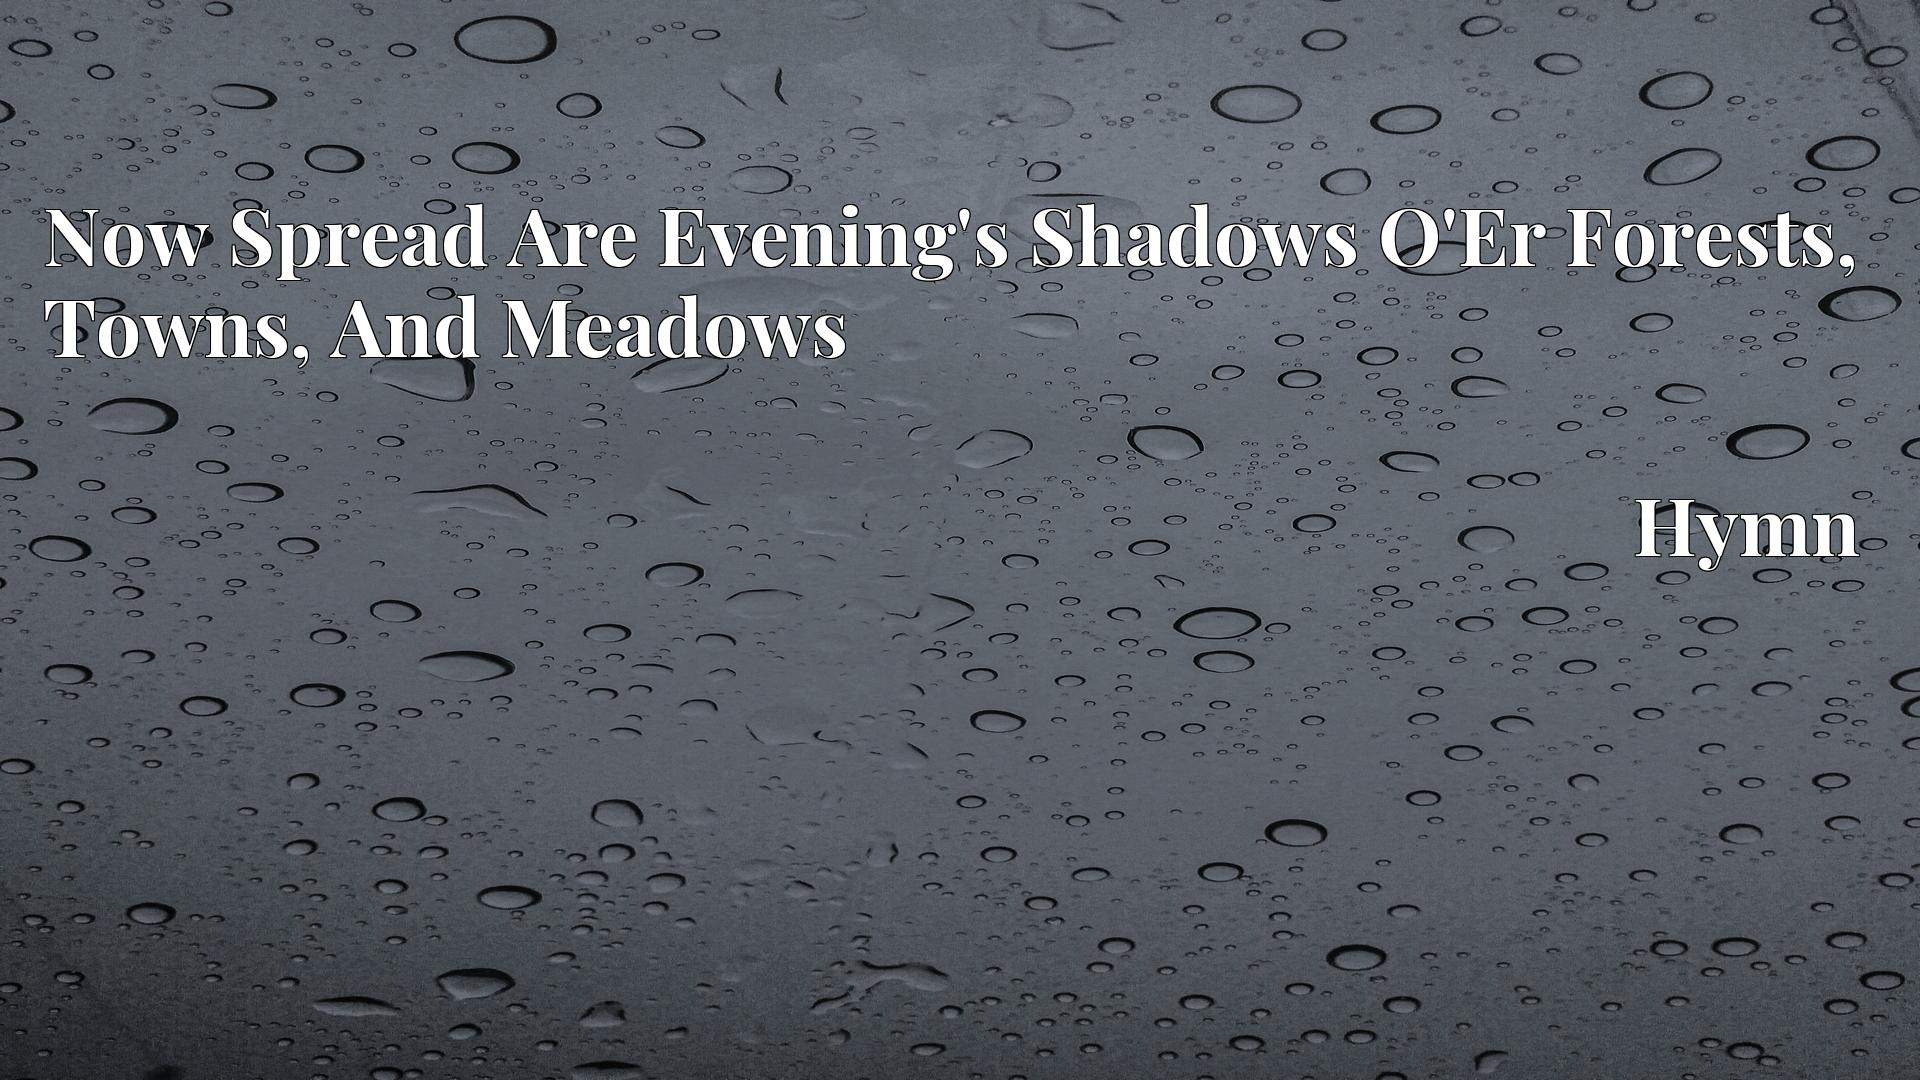 Now Spread Are Evening's Shadows O'Er Forests, Towns, And Meadows - Hymn